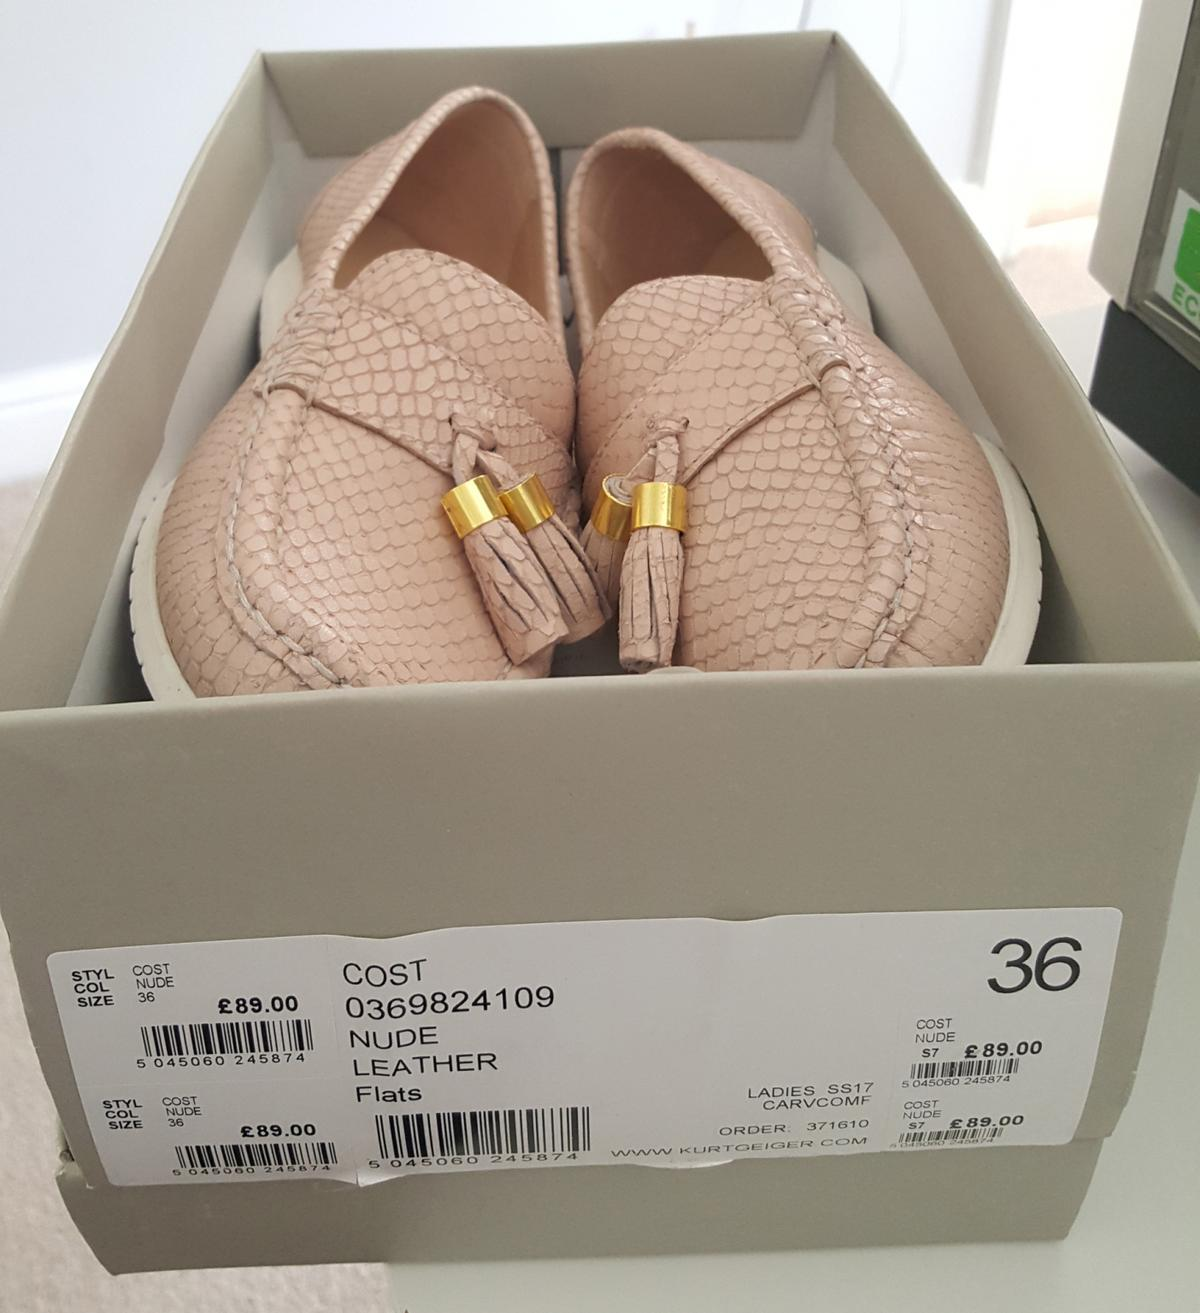 CARVELA Comfort Leather Nude Flat Loafers Size: 36 (UK 4)  BRAND NEW - NEVER WORN Still in original box. Selling due to foot injury and no longer suitable. Made from a lovely soft leather.  Originally paid £89.00 from John Lewis Will post for at cost £5 covered by seller.